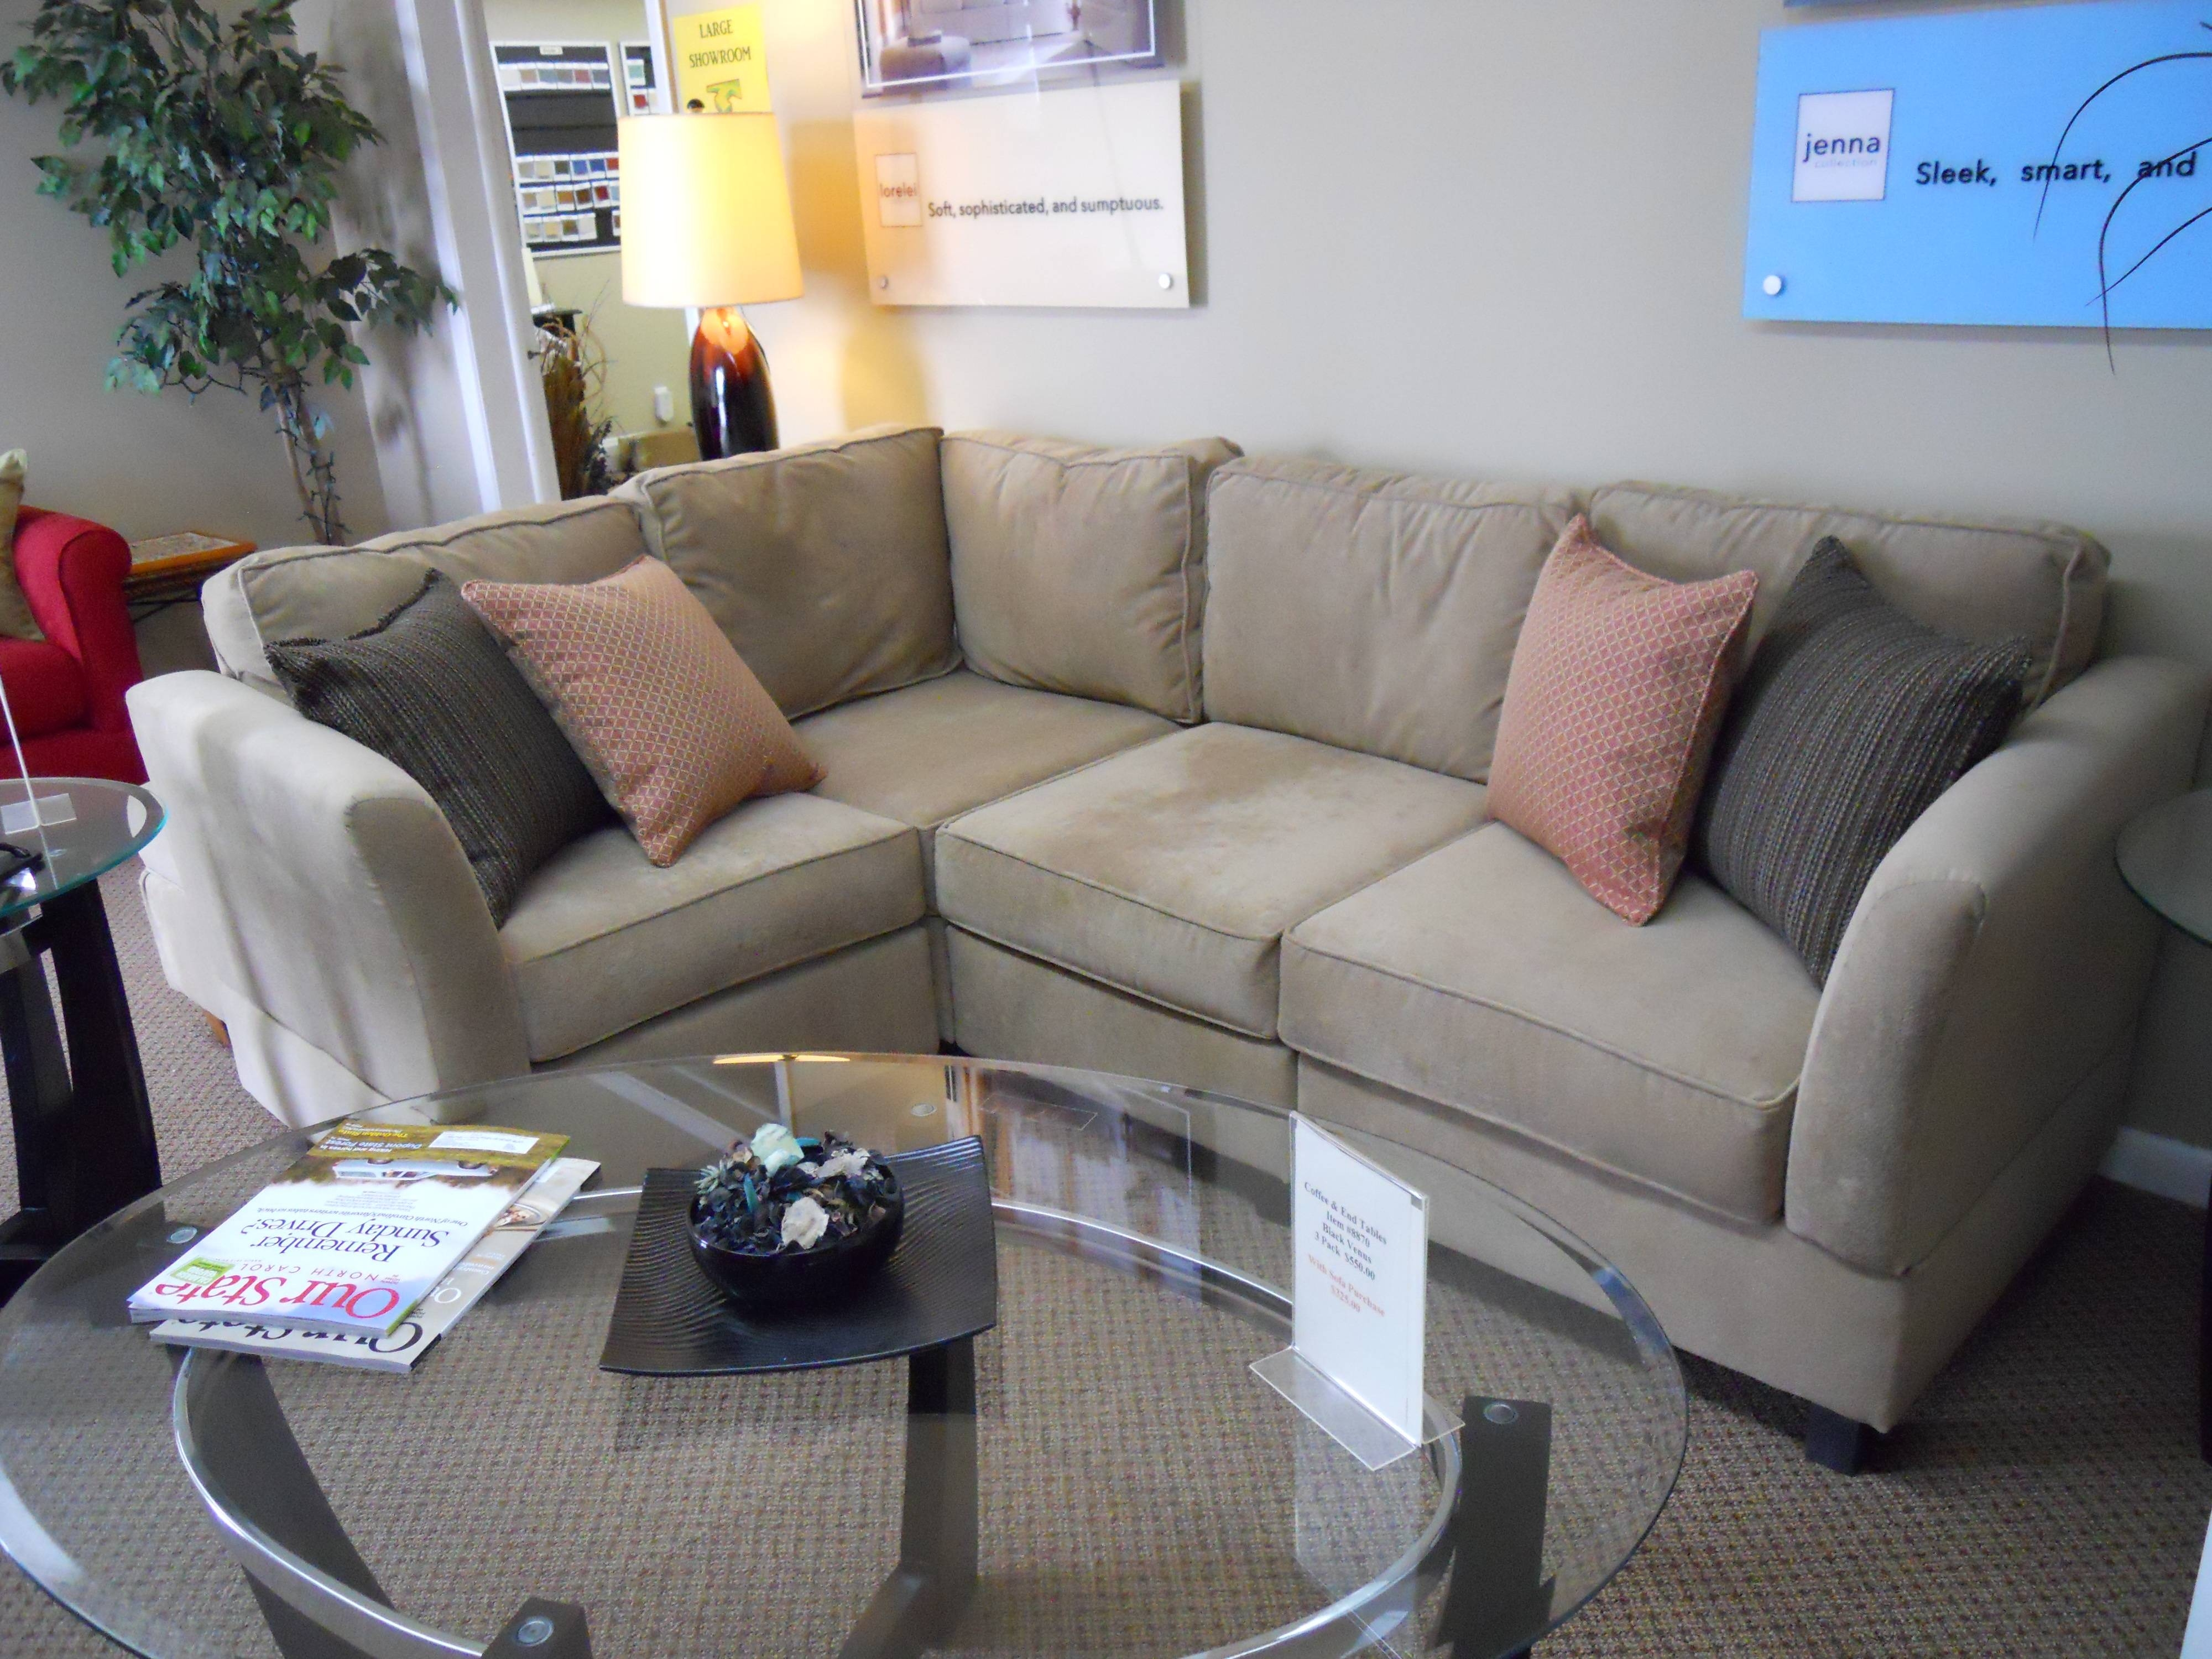 Sleek Sofas Small Es - Leather Sectional Sofa intended for Sleek Sectional Sofa (Image 19 of 25)